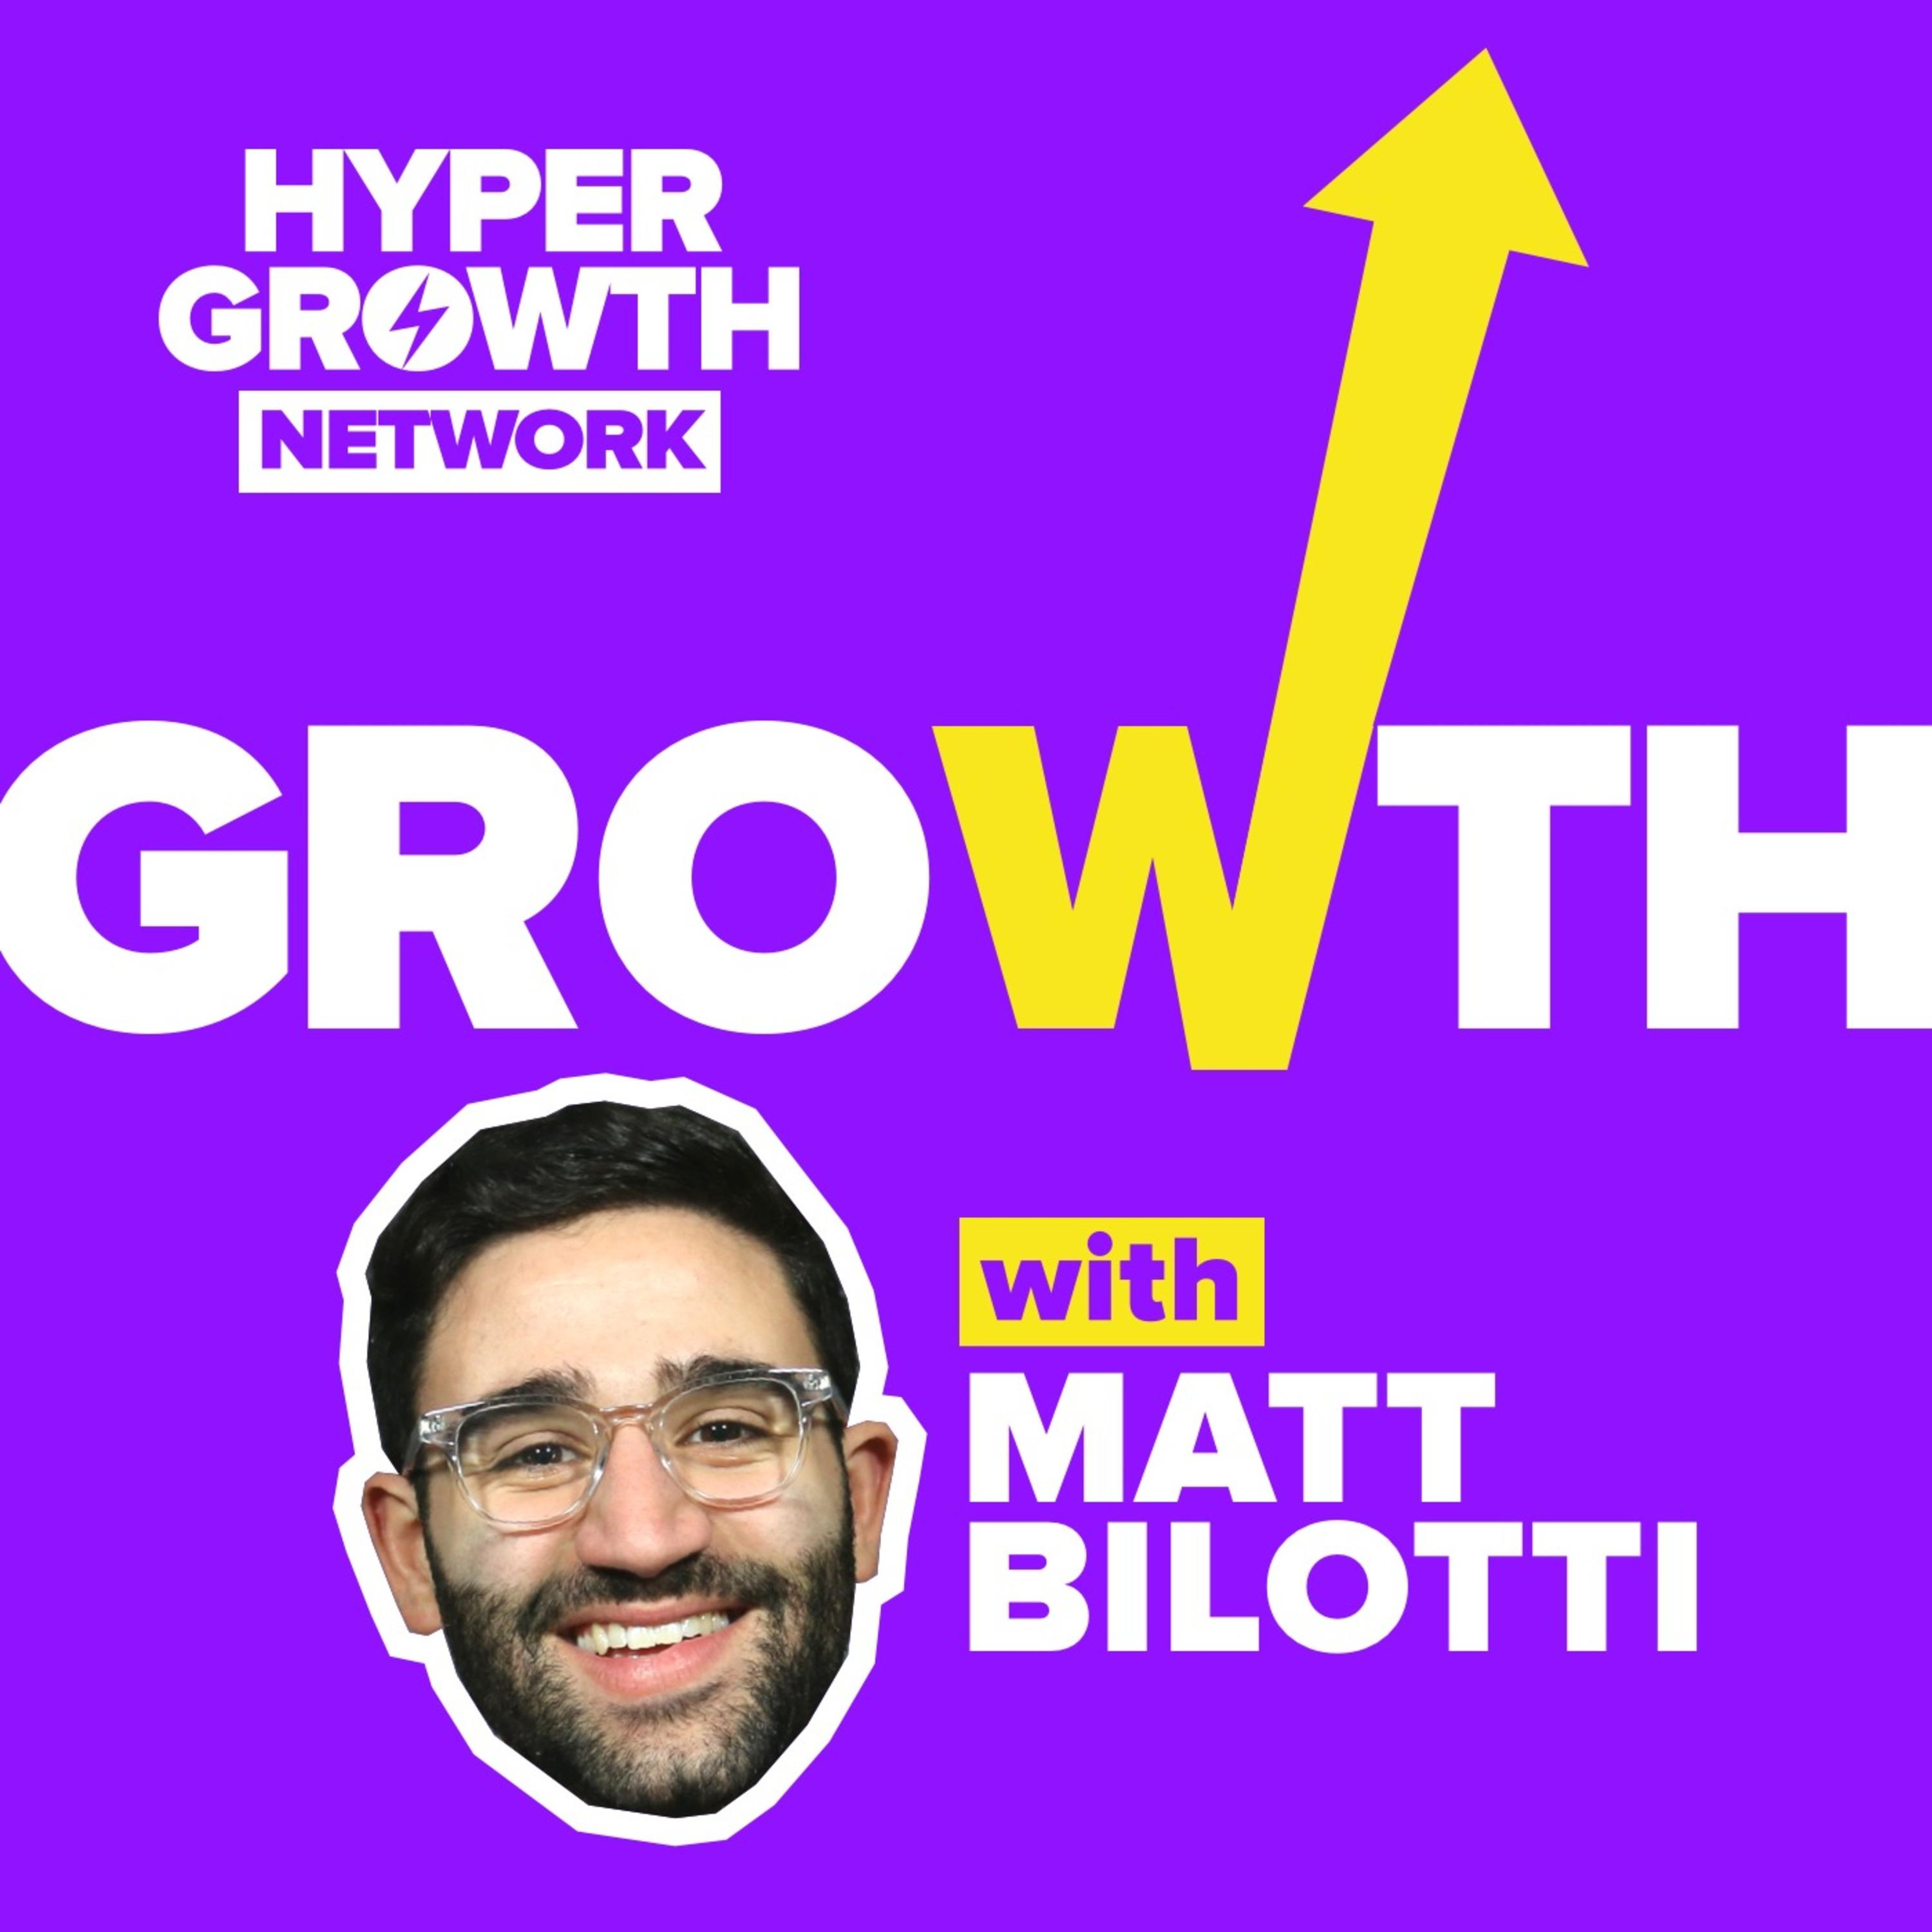 Going Global: When & How To Do It Successfully (With Lucidgrowth's Joe Wilkinson)